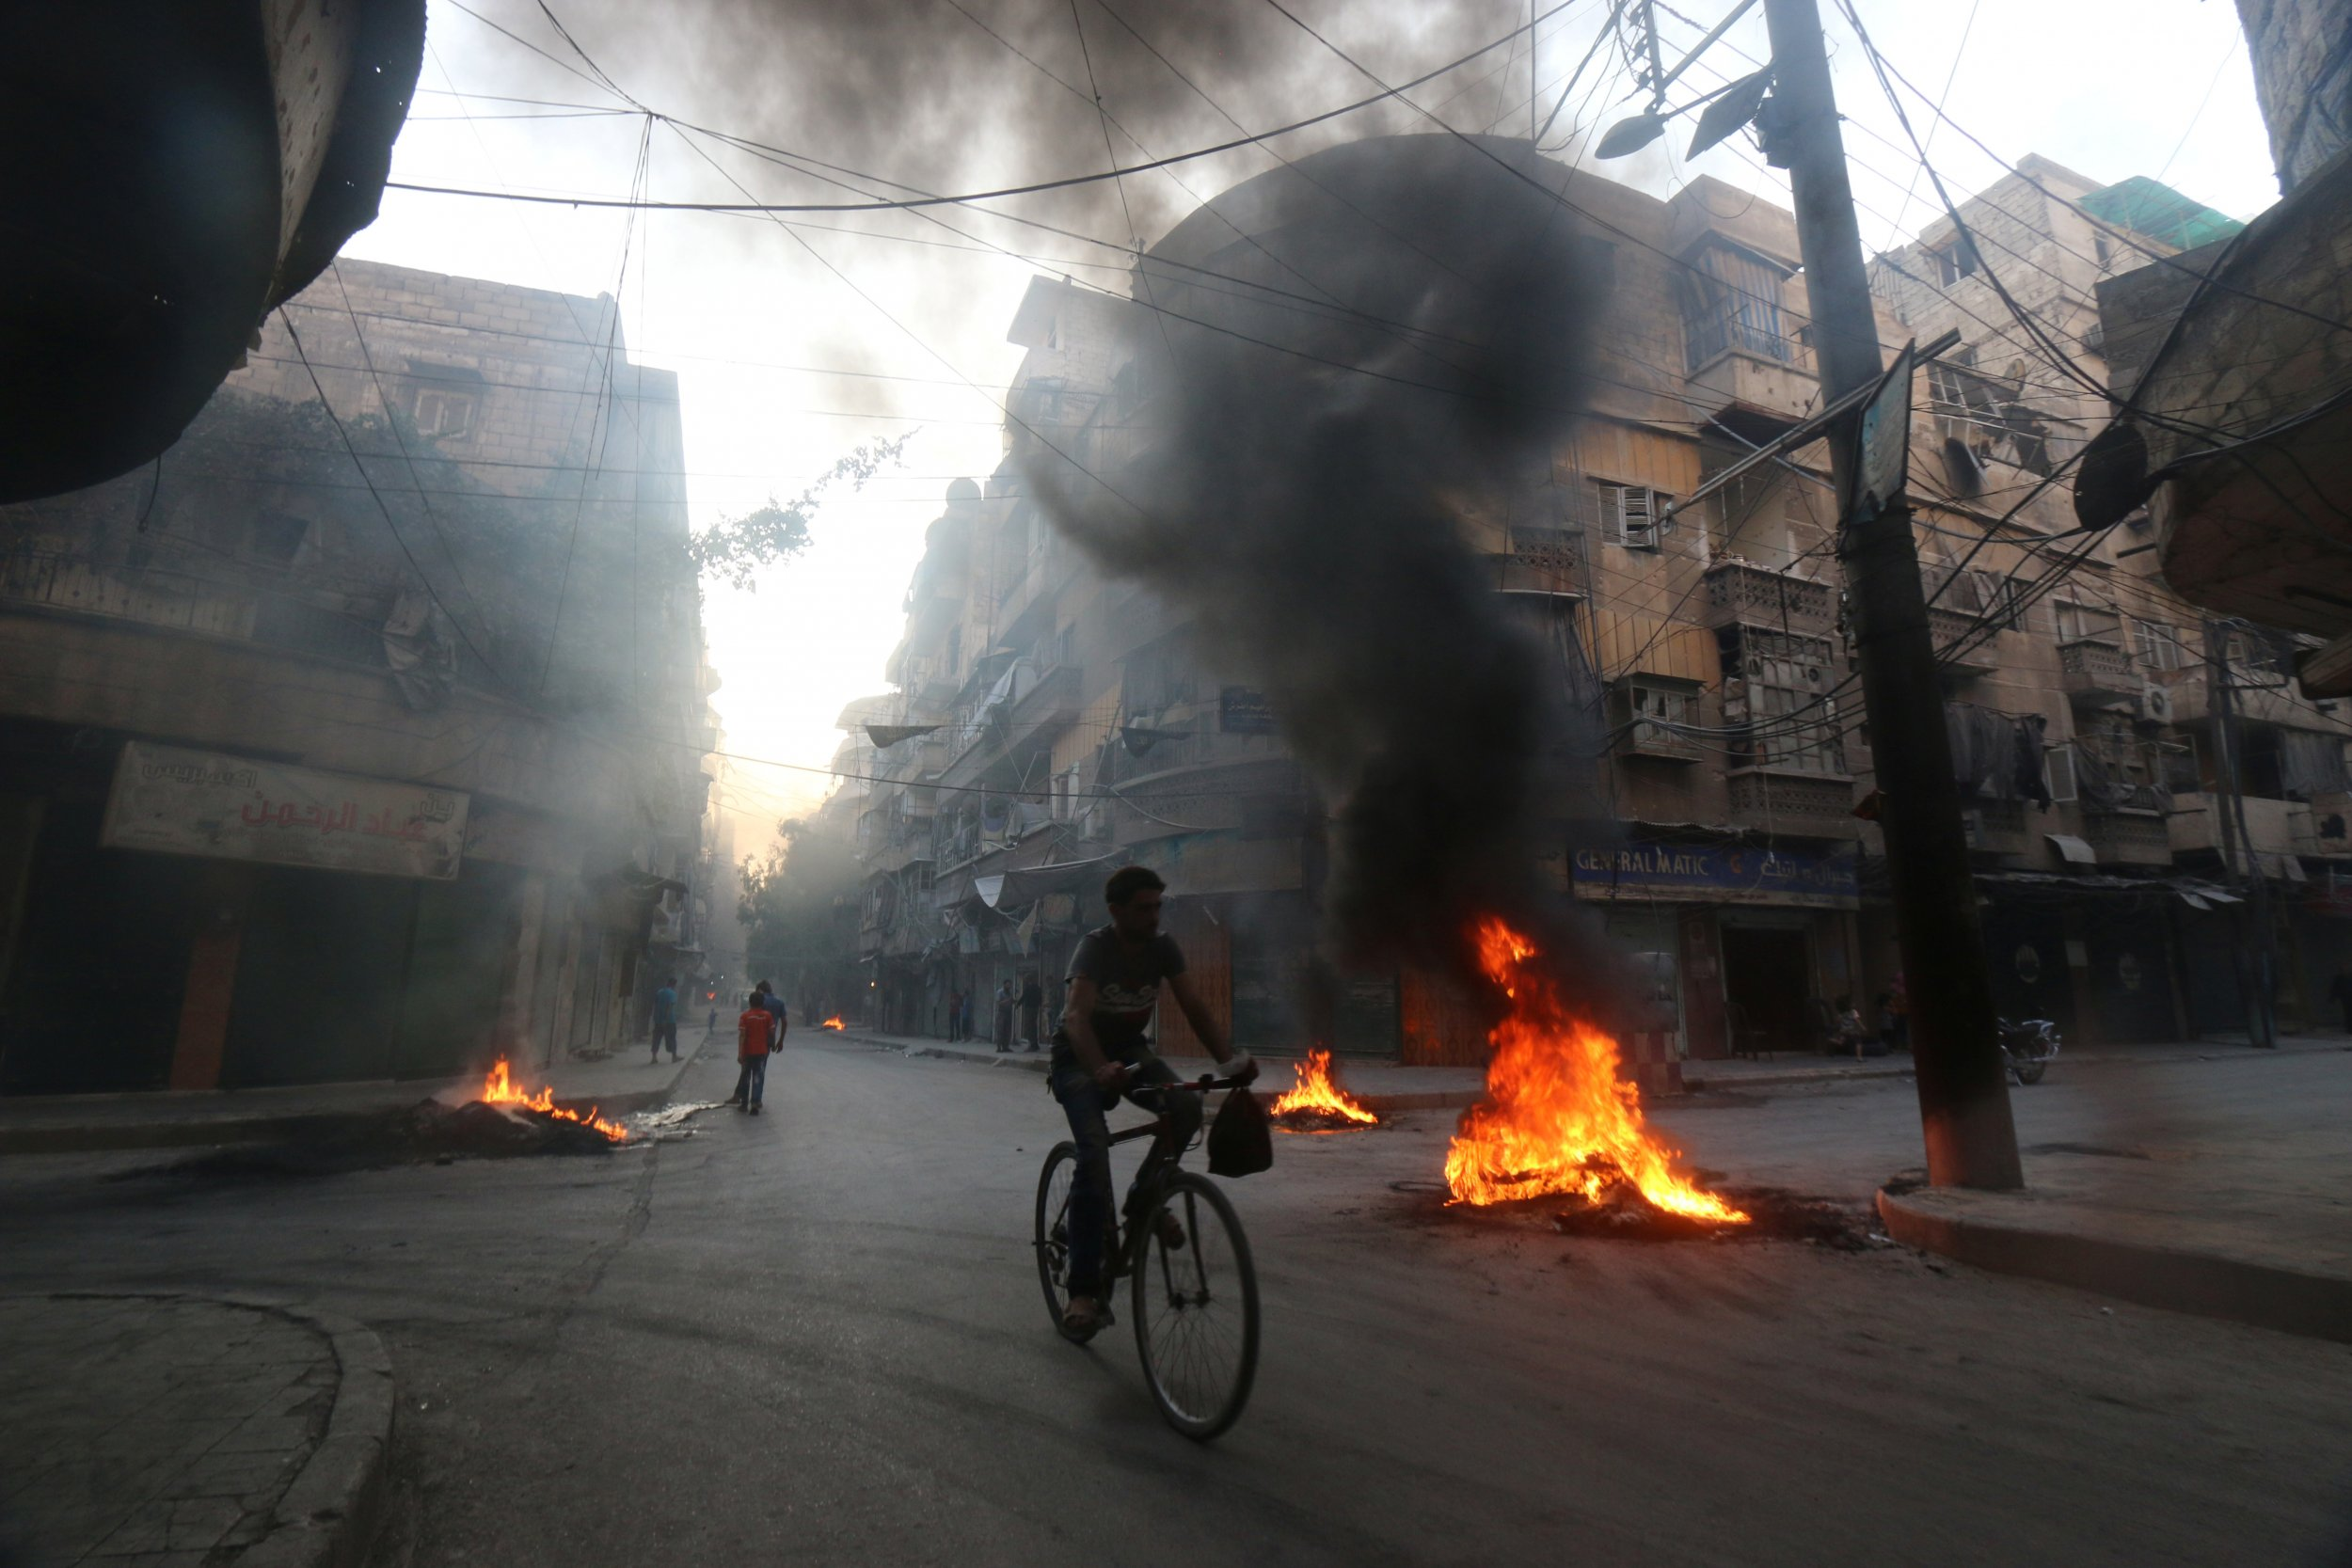 Tires burn in Aleppo